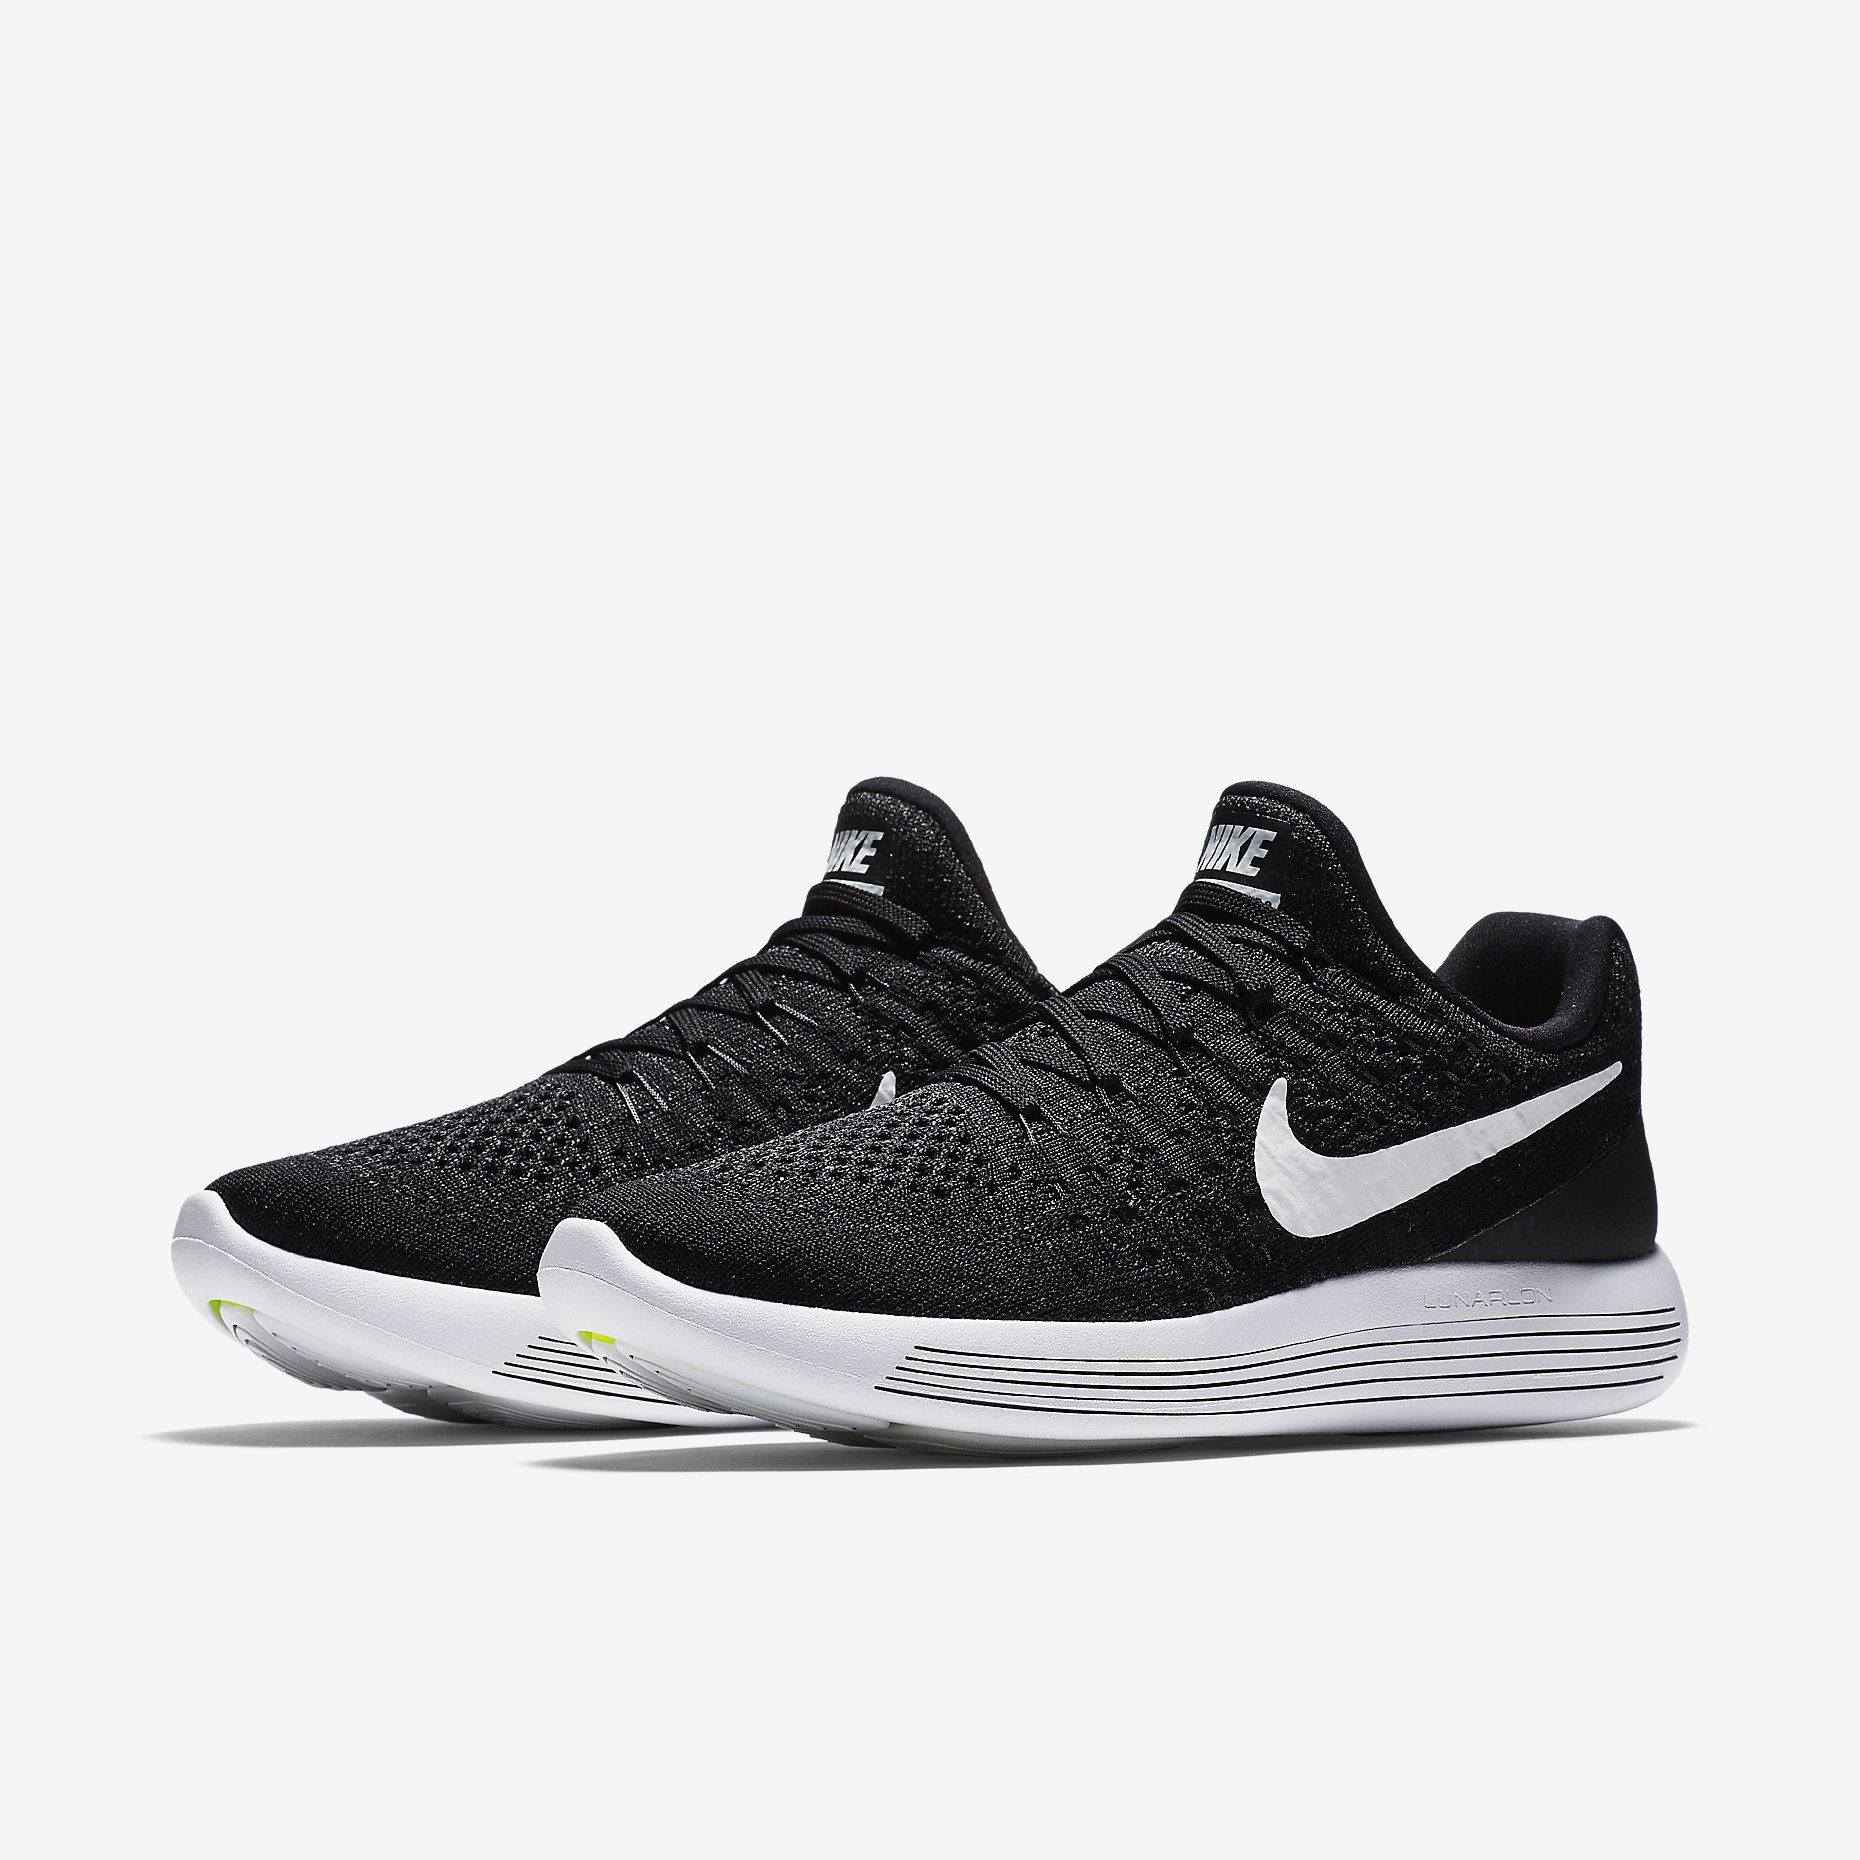 d109d8f417d64 Nike LunarEpic Low FlyKnit 2 Womens Running Shoes - Alton Sports